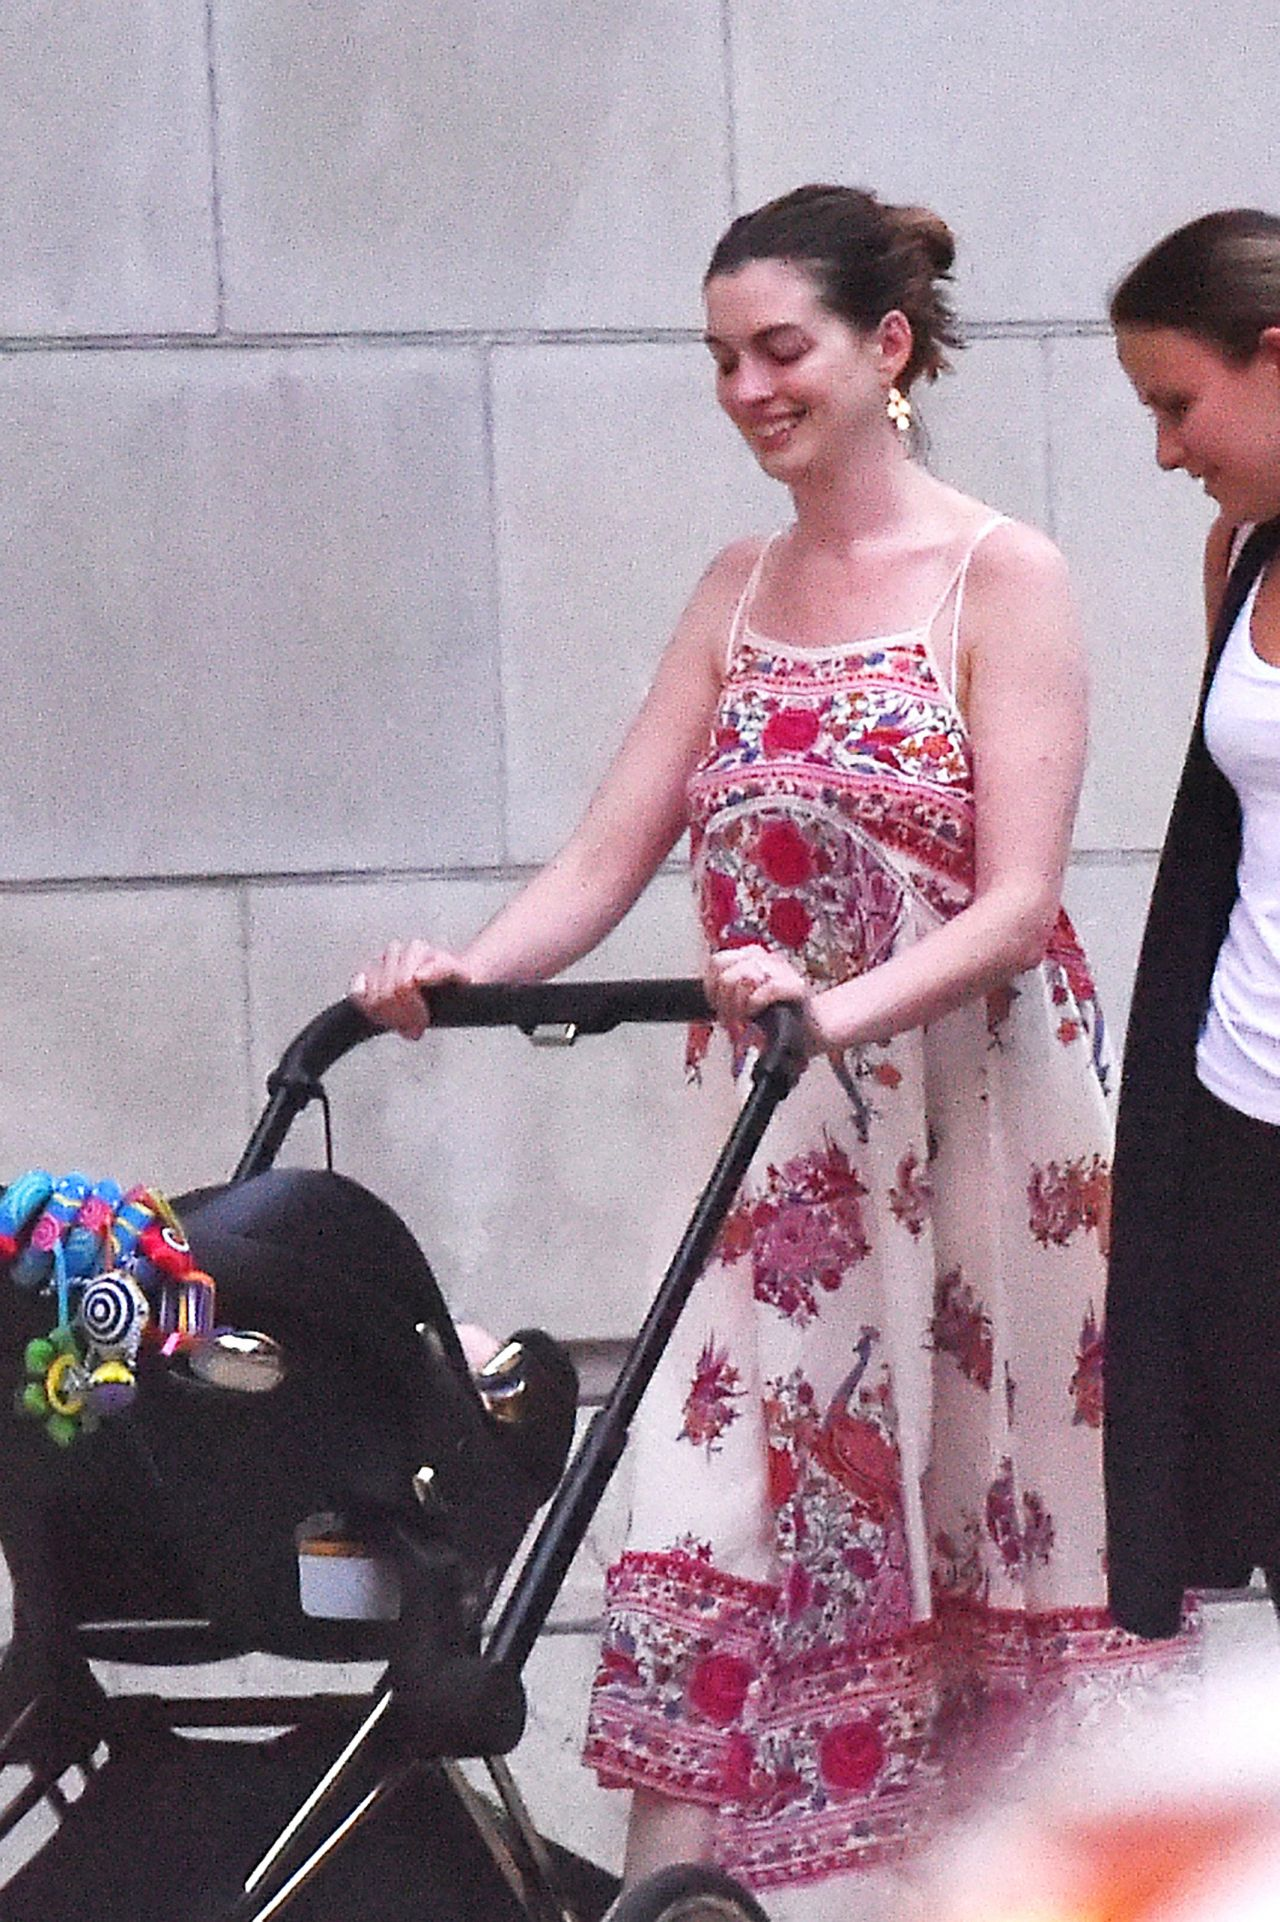 Anne Hathaway Out With Husband Amp New Baby Boy Nyc 8 16